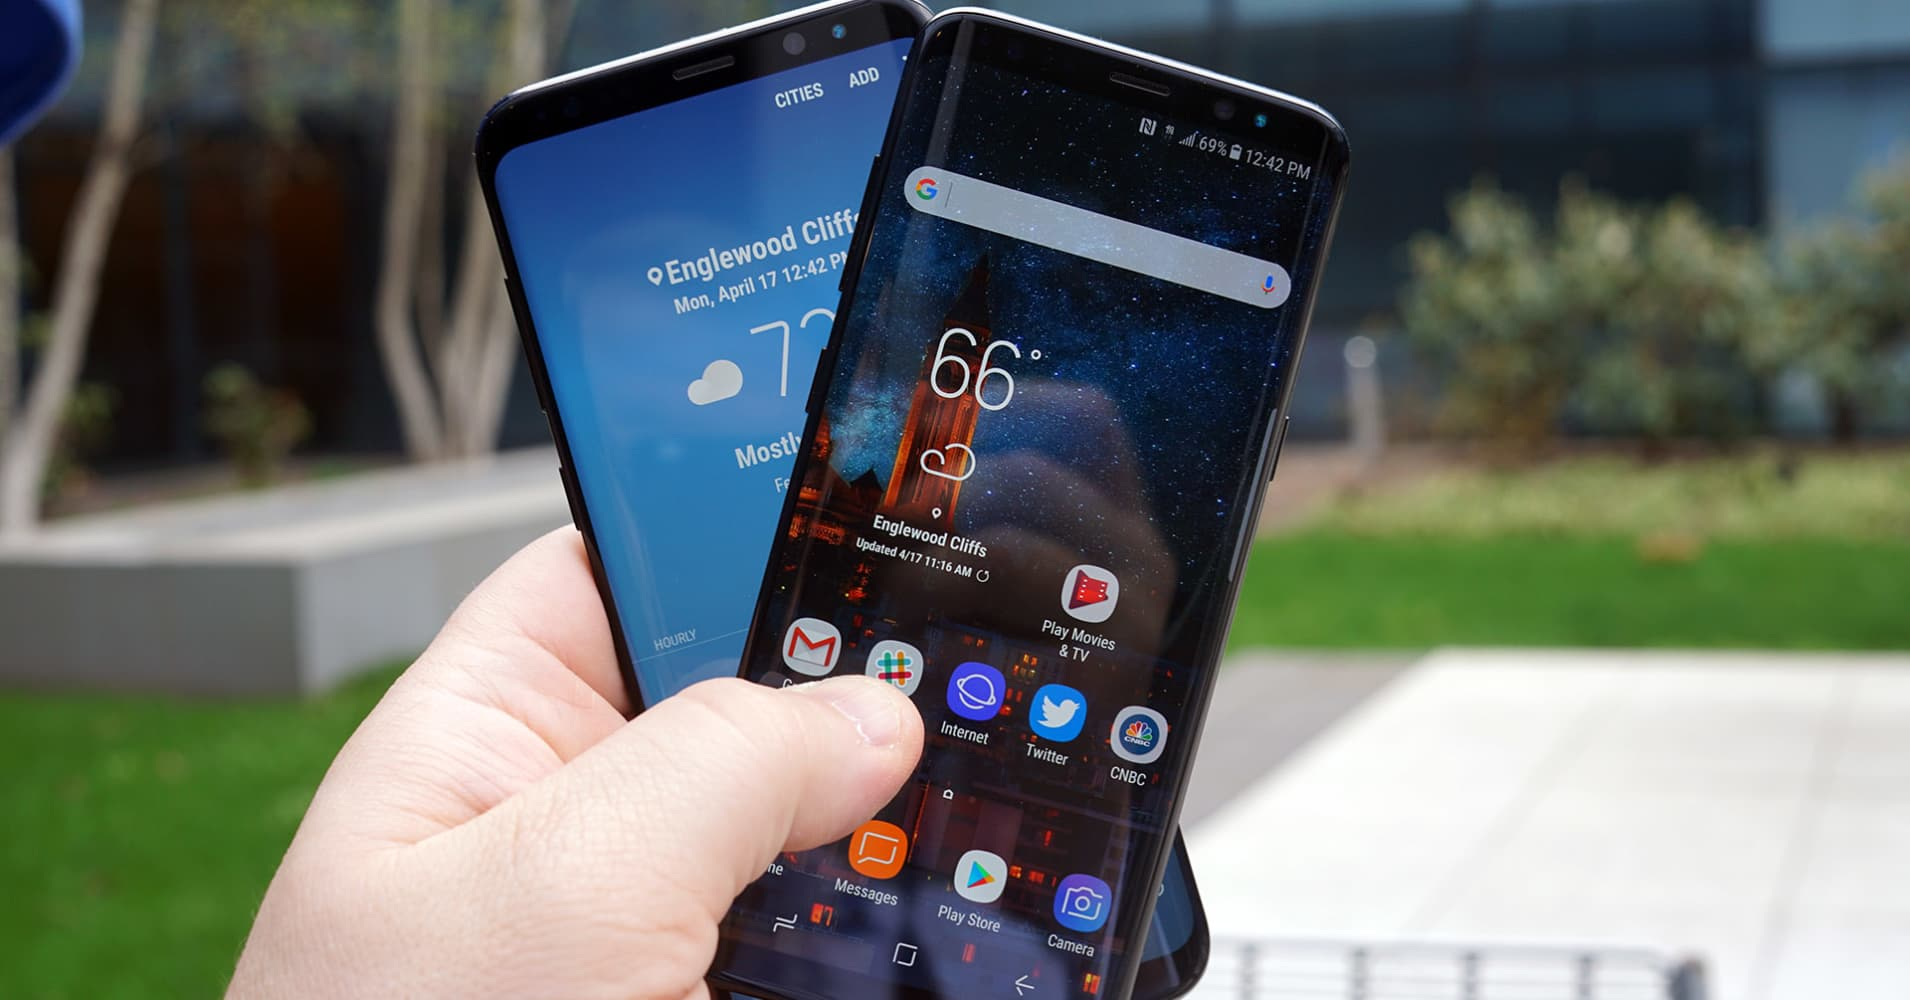 Go big or go home: Why you should buy the larger Galaxy S8+